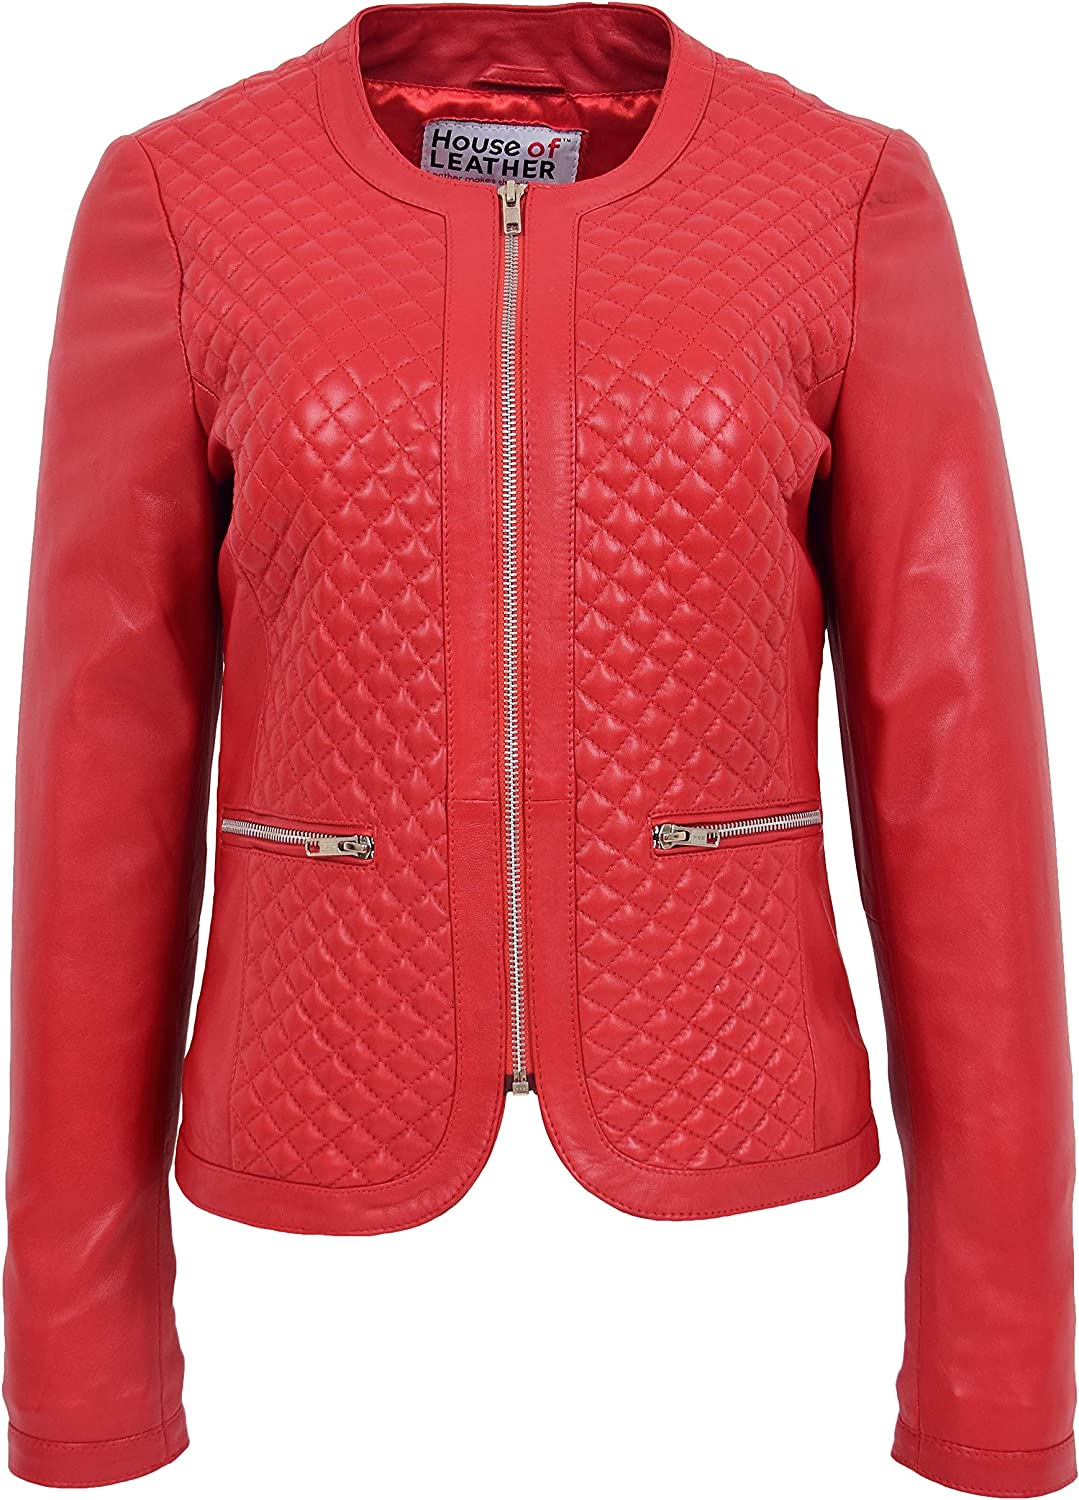 Womens Soft Leather Collarless Jacket Casual Quilted Design Joan Red